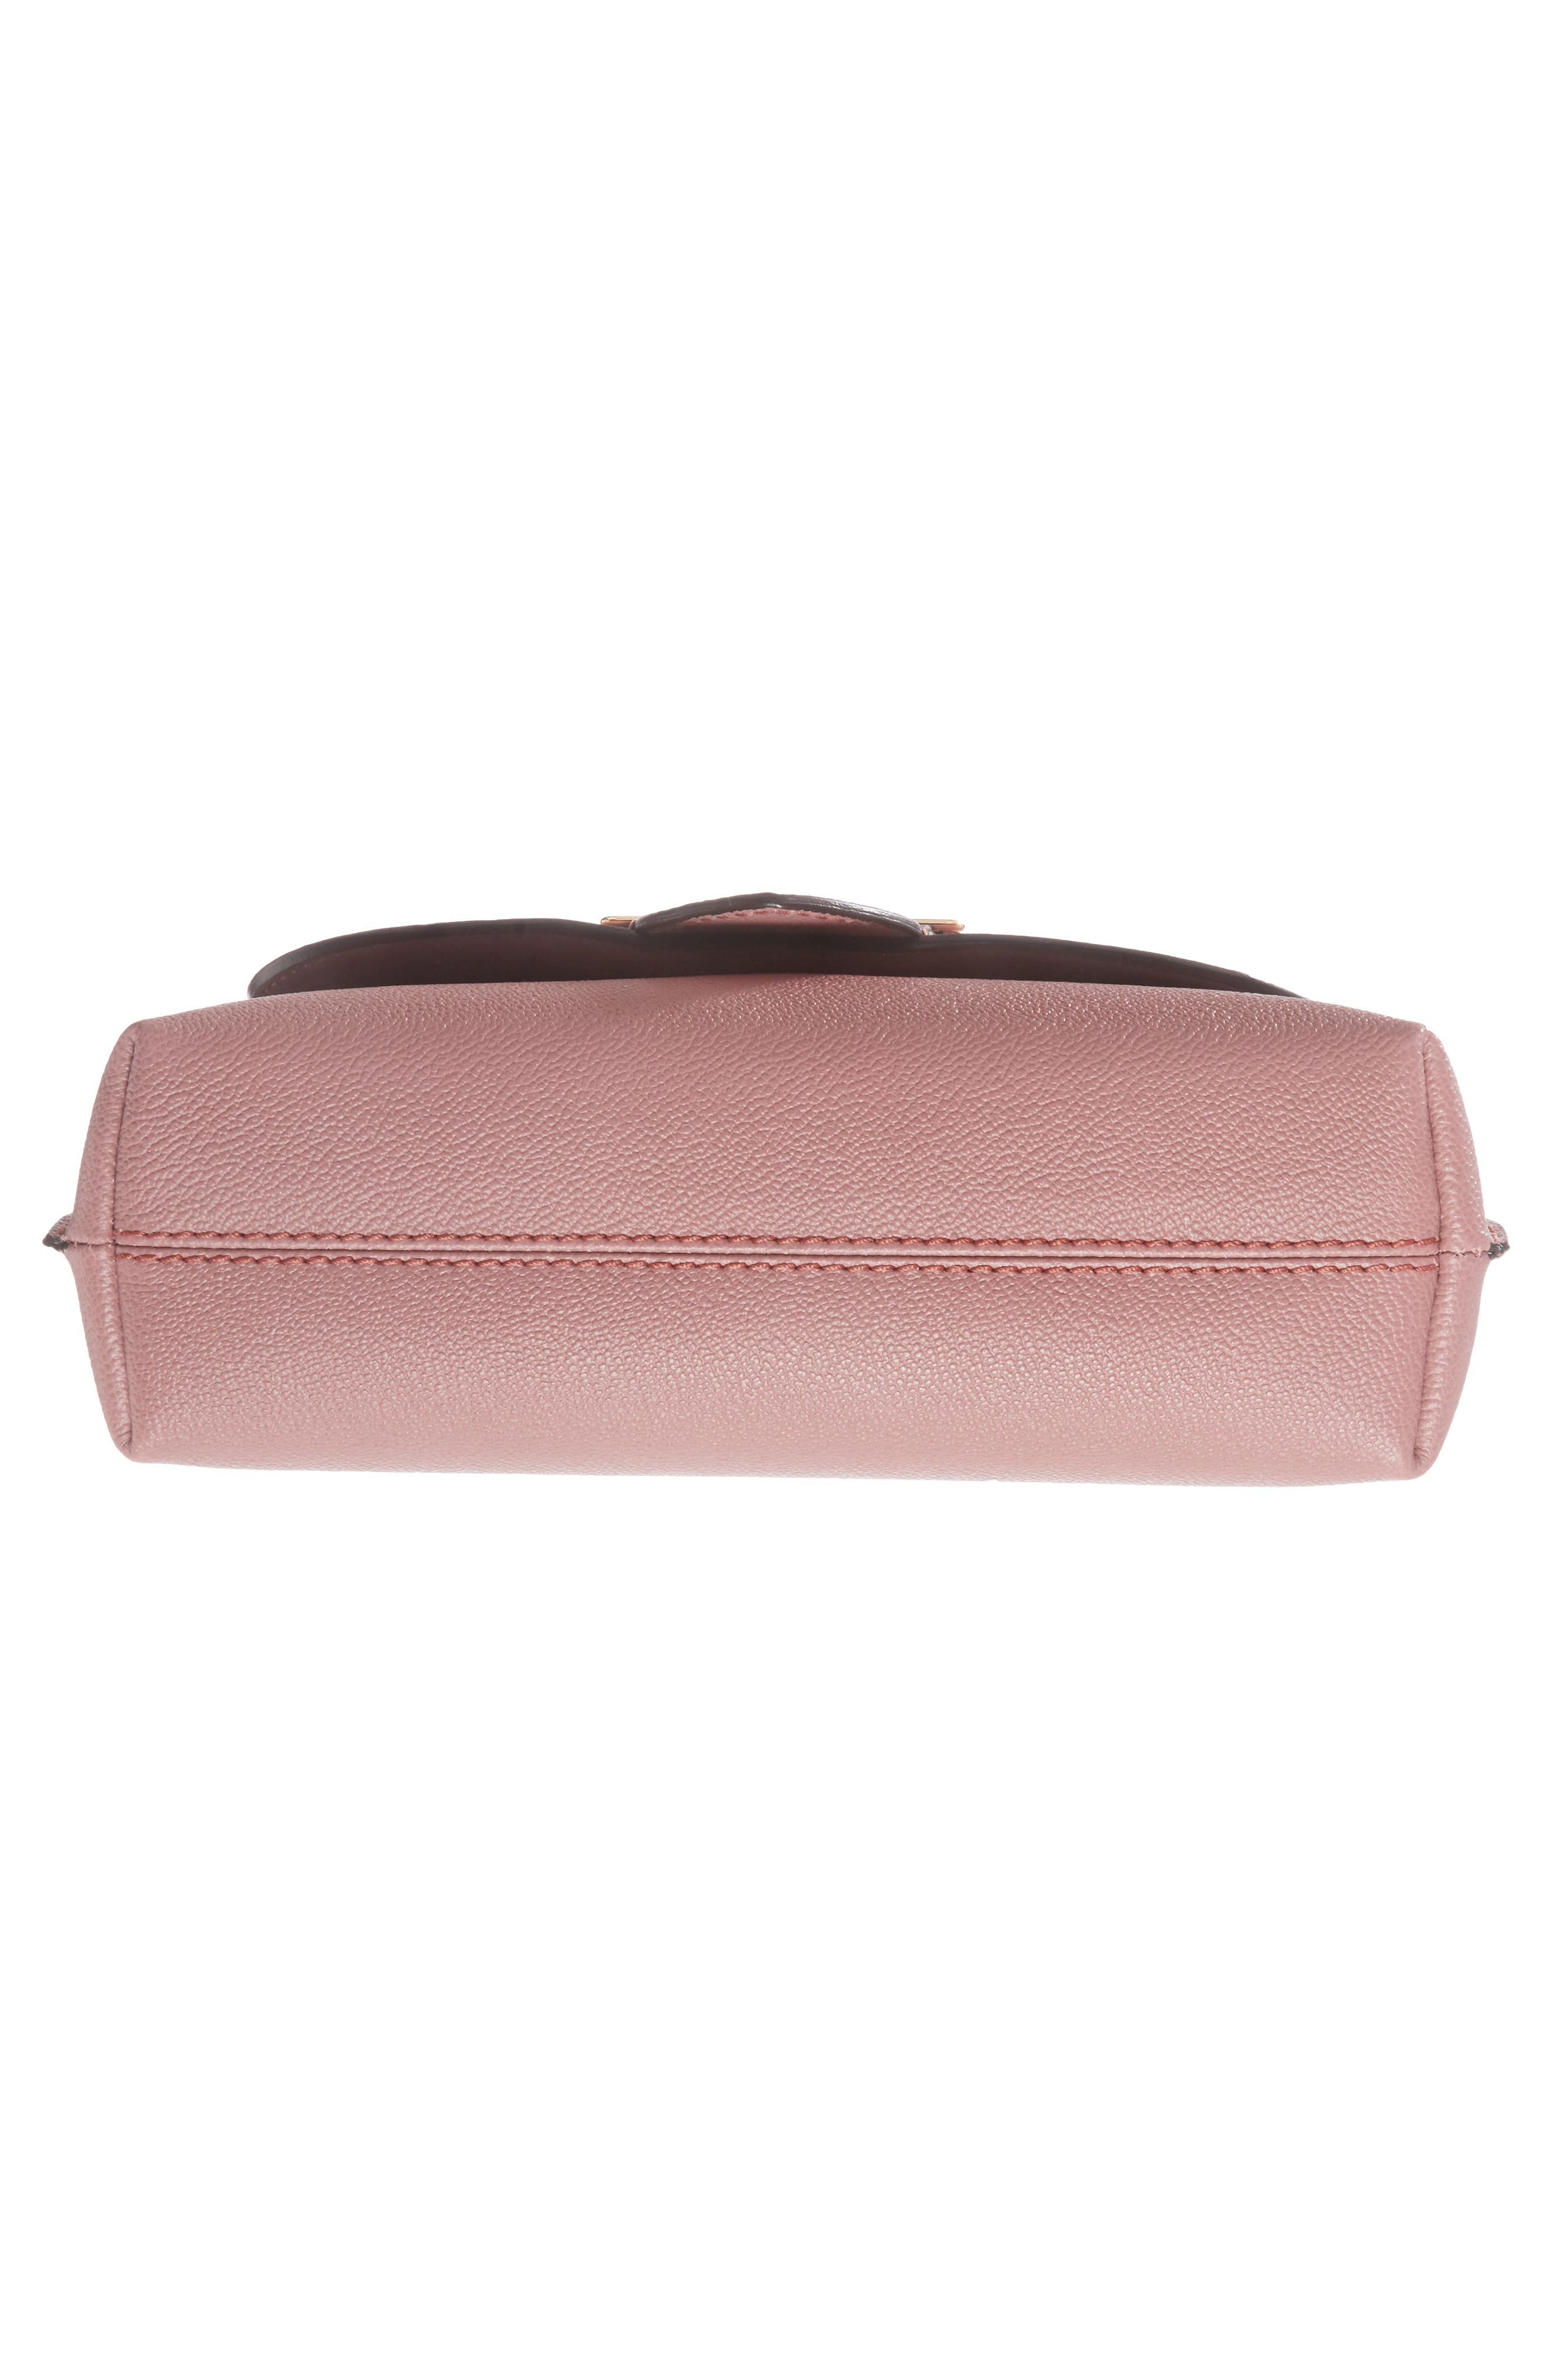 Small Medley Leather Shoulder Bag,                             Alternate thumbnail 6, color,                             Dusty Pink